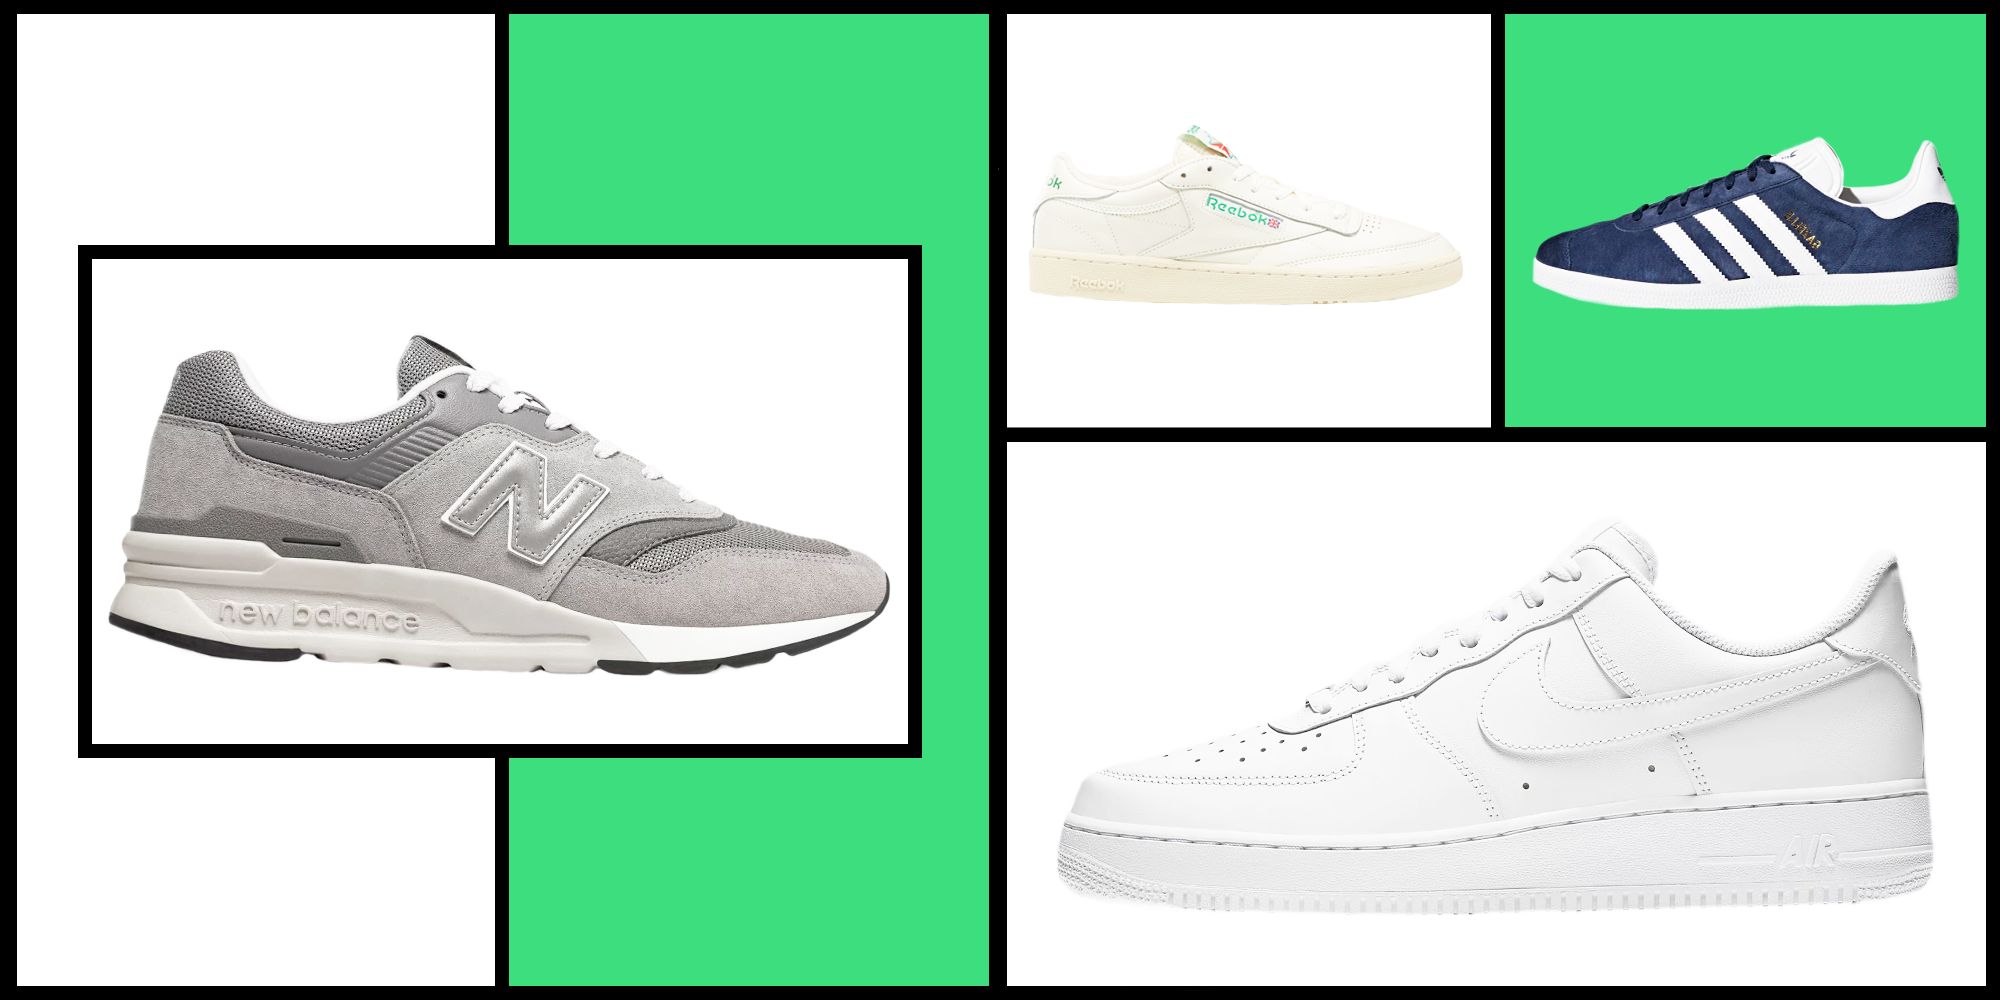 The 15 Coolest Sneakers Under $100